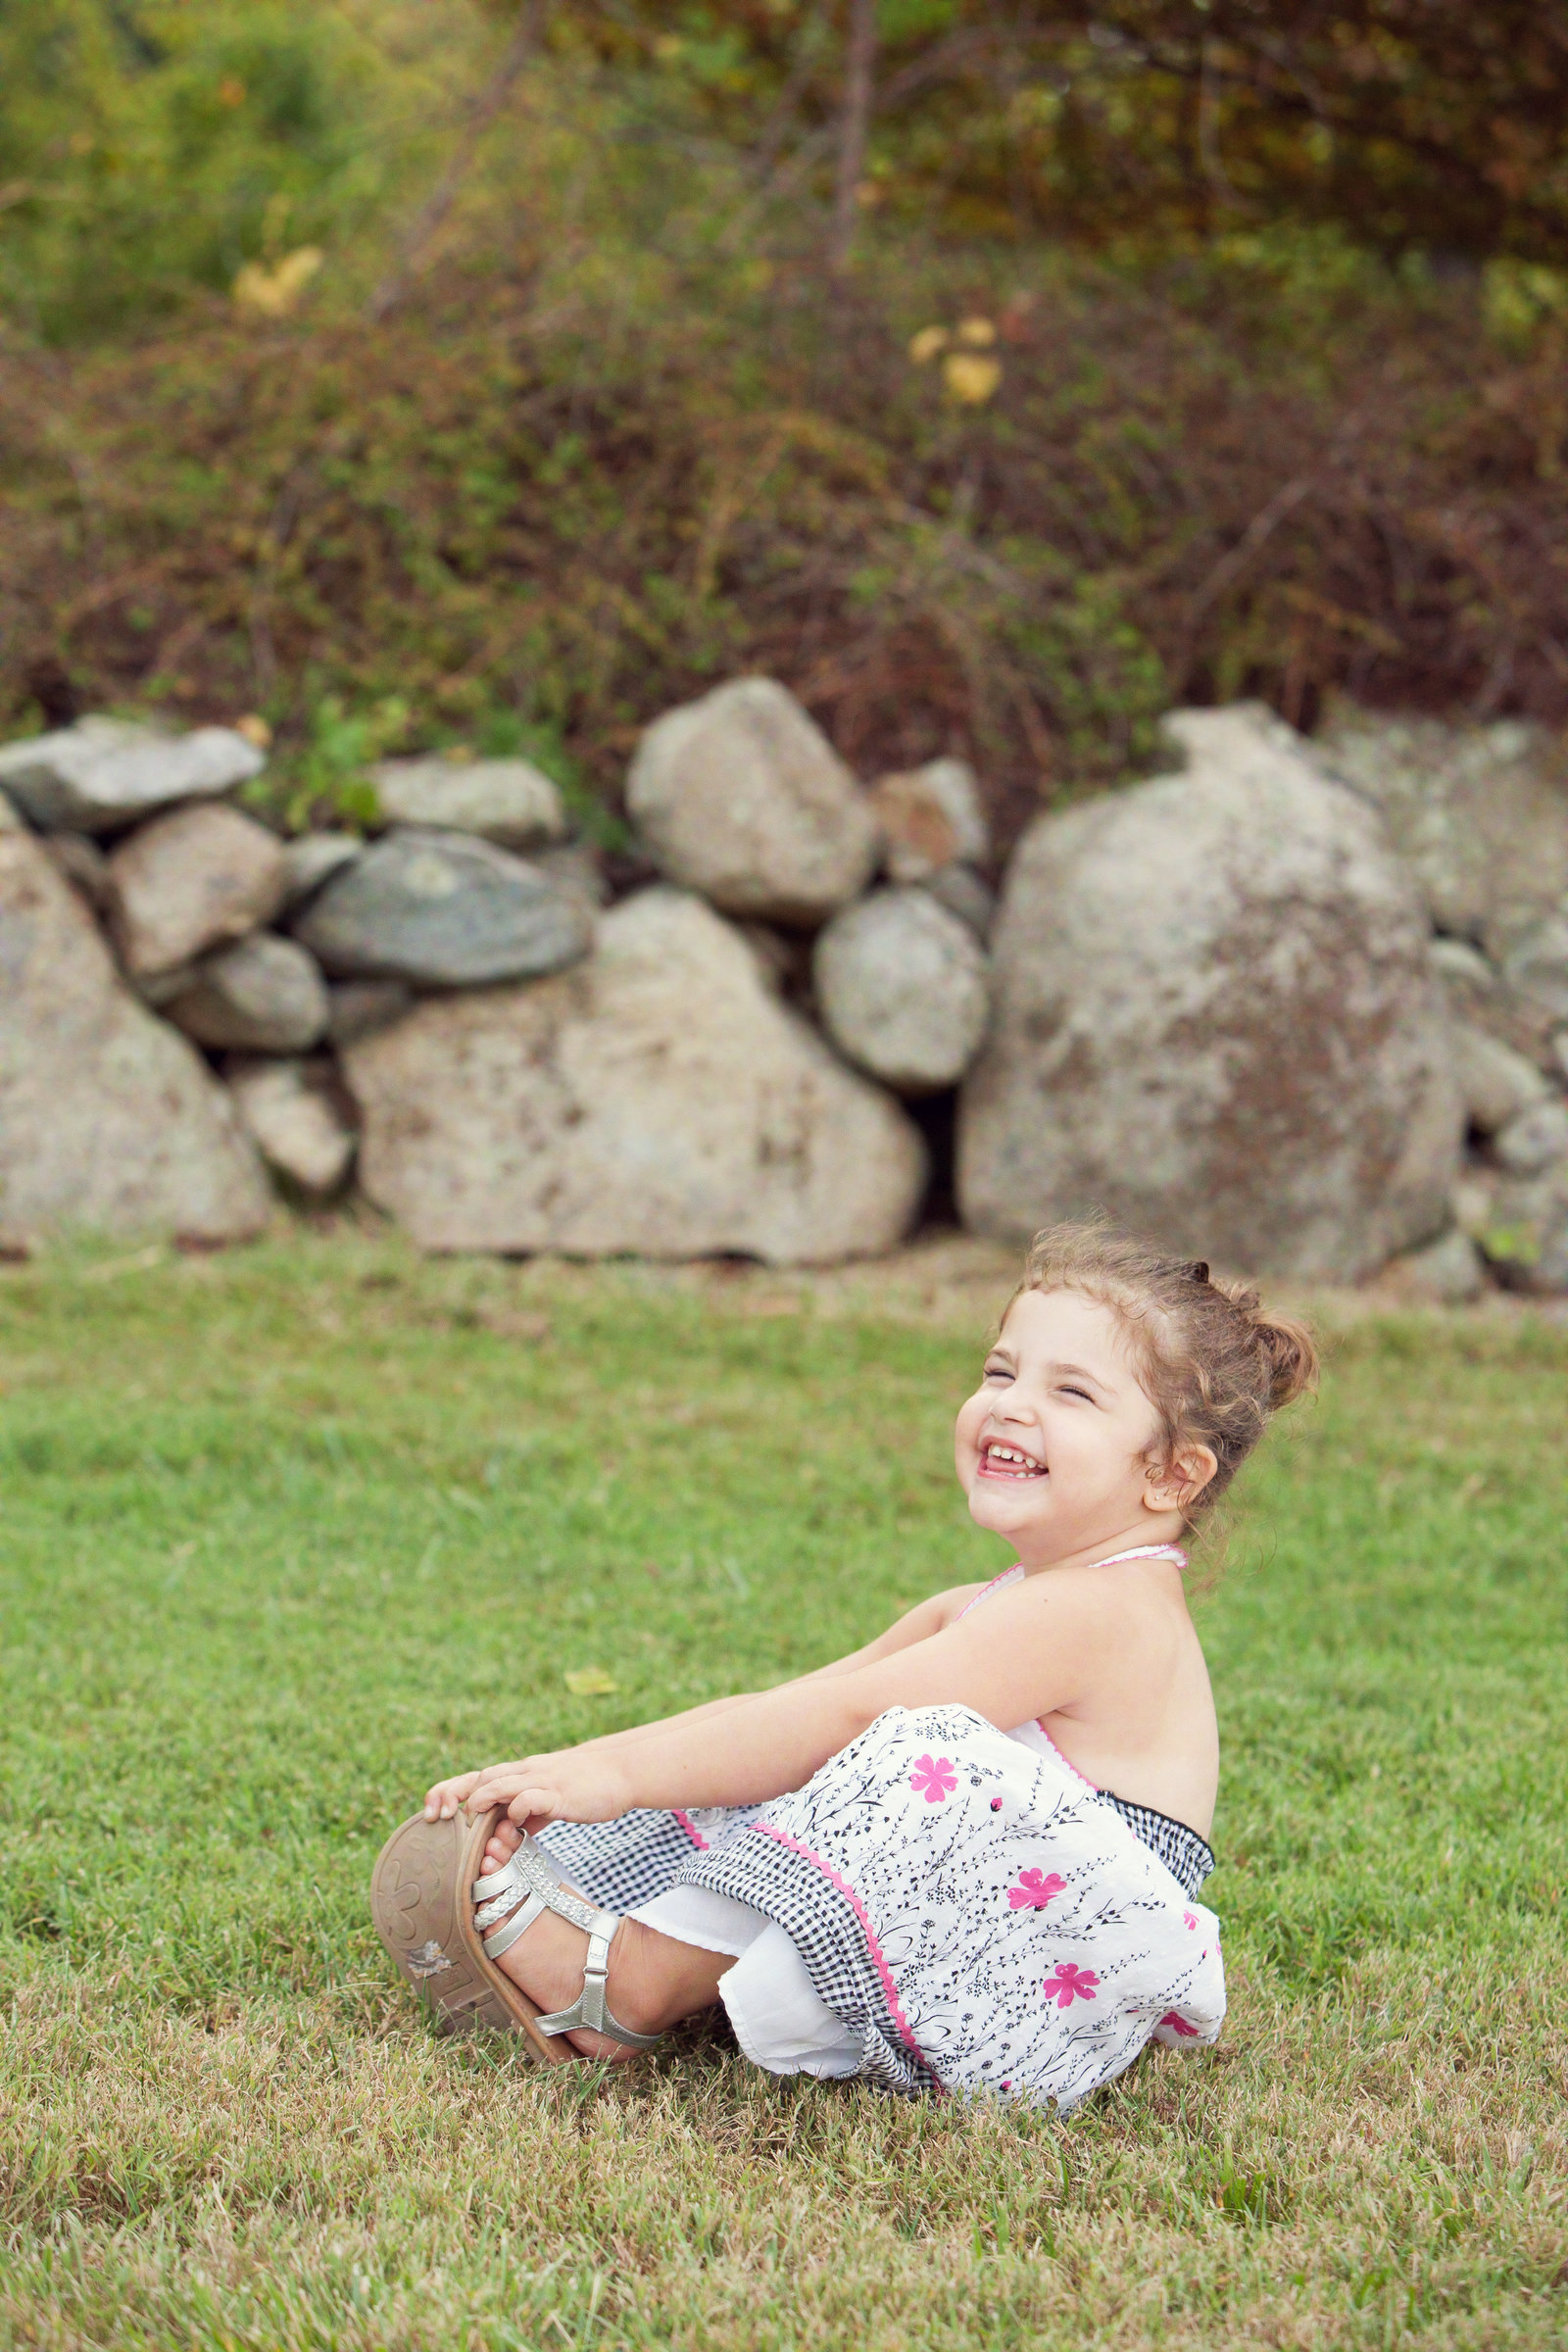 outdoor children's photos in the Hudson Valley by professional photographer Autumn Photography in Cornwall NY taken at Skylands Manor NJ botanical garden